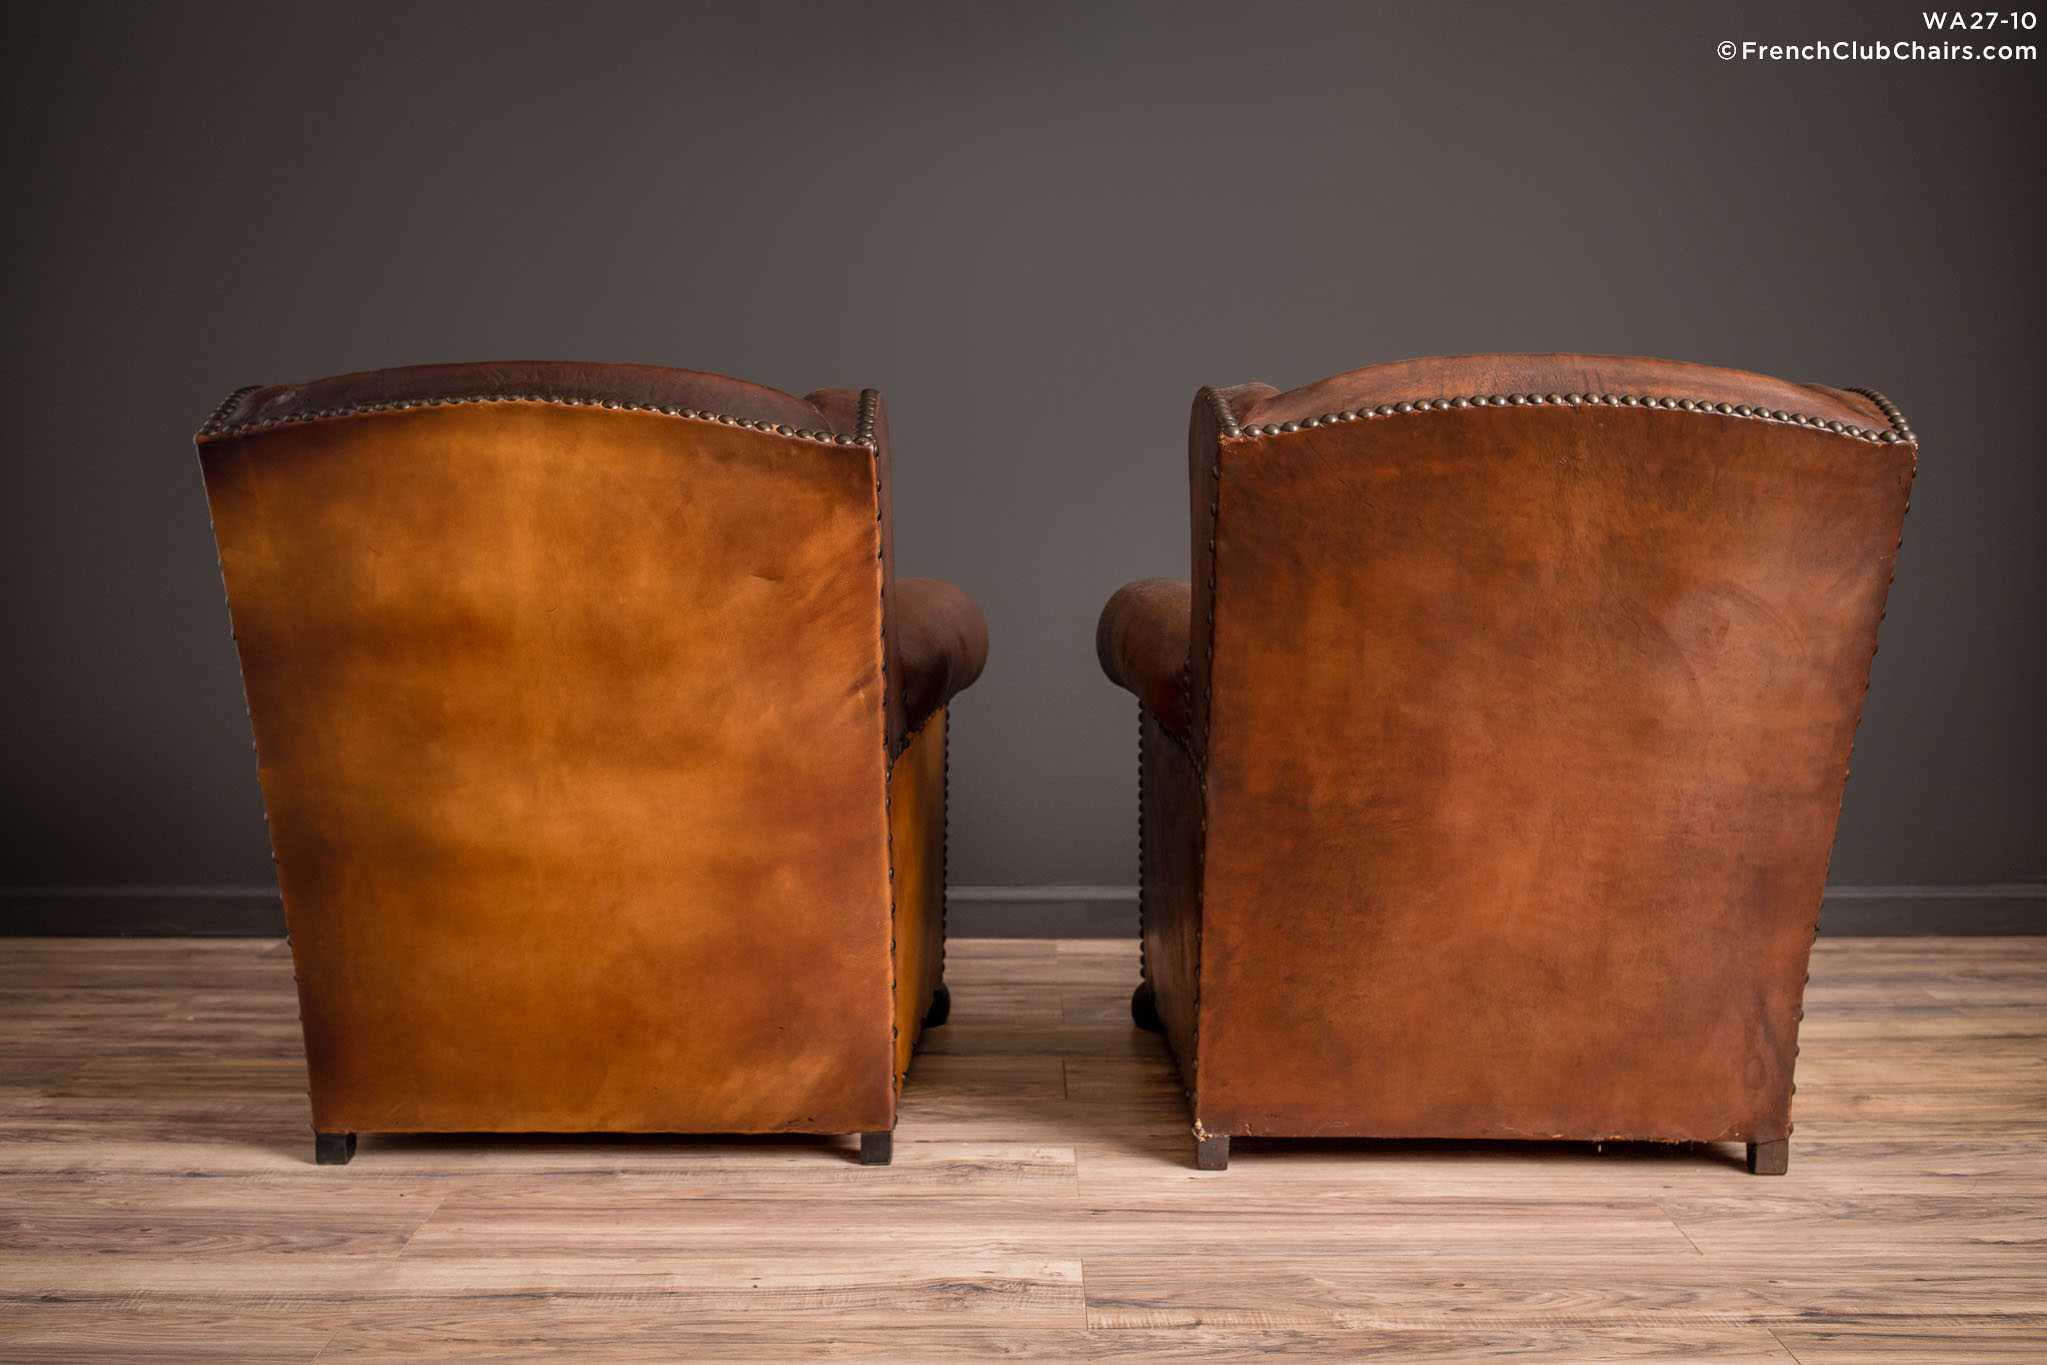 WA_27-10_The_Kings_Wingback_Pair_R_2BK-v01-williams-antiks-leather-french-club-chair-wa_fcccom